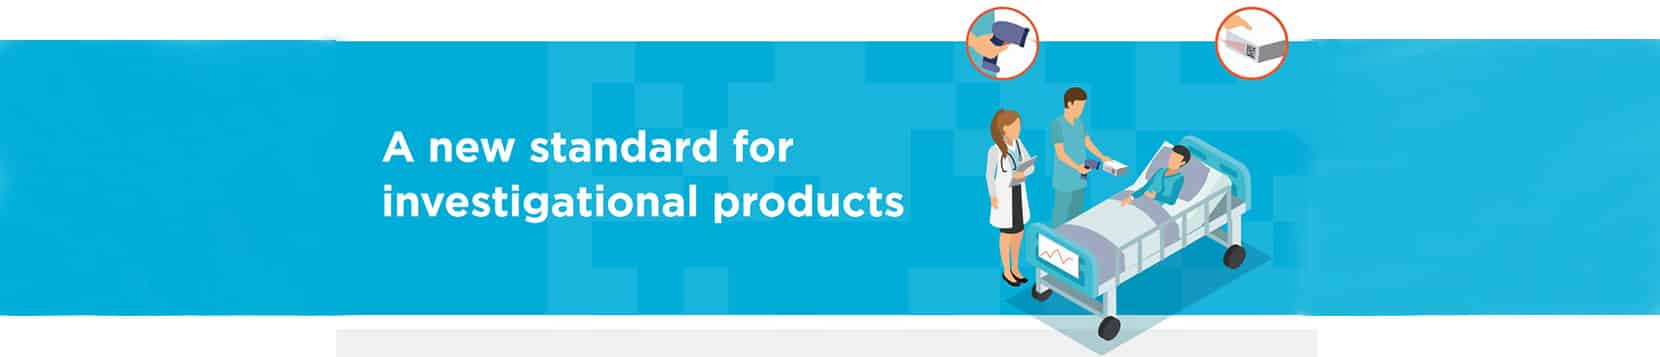 Why you should take advantage of the AI 7240 and adopt the new GS1 Clinical Trial barcode standards banner - Why you should take advantage of the AI (7240) and adopt the new GS1 Clinical Trial barcode standards